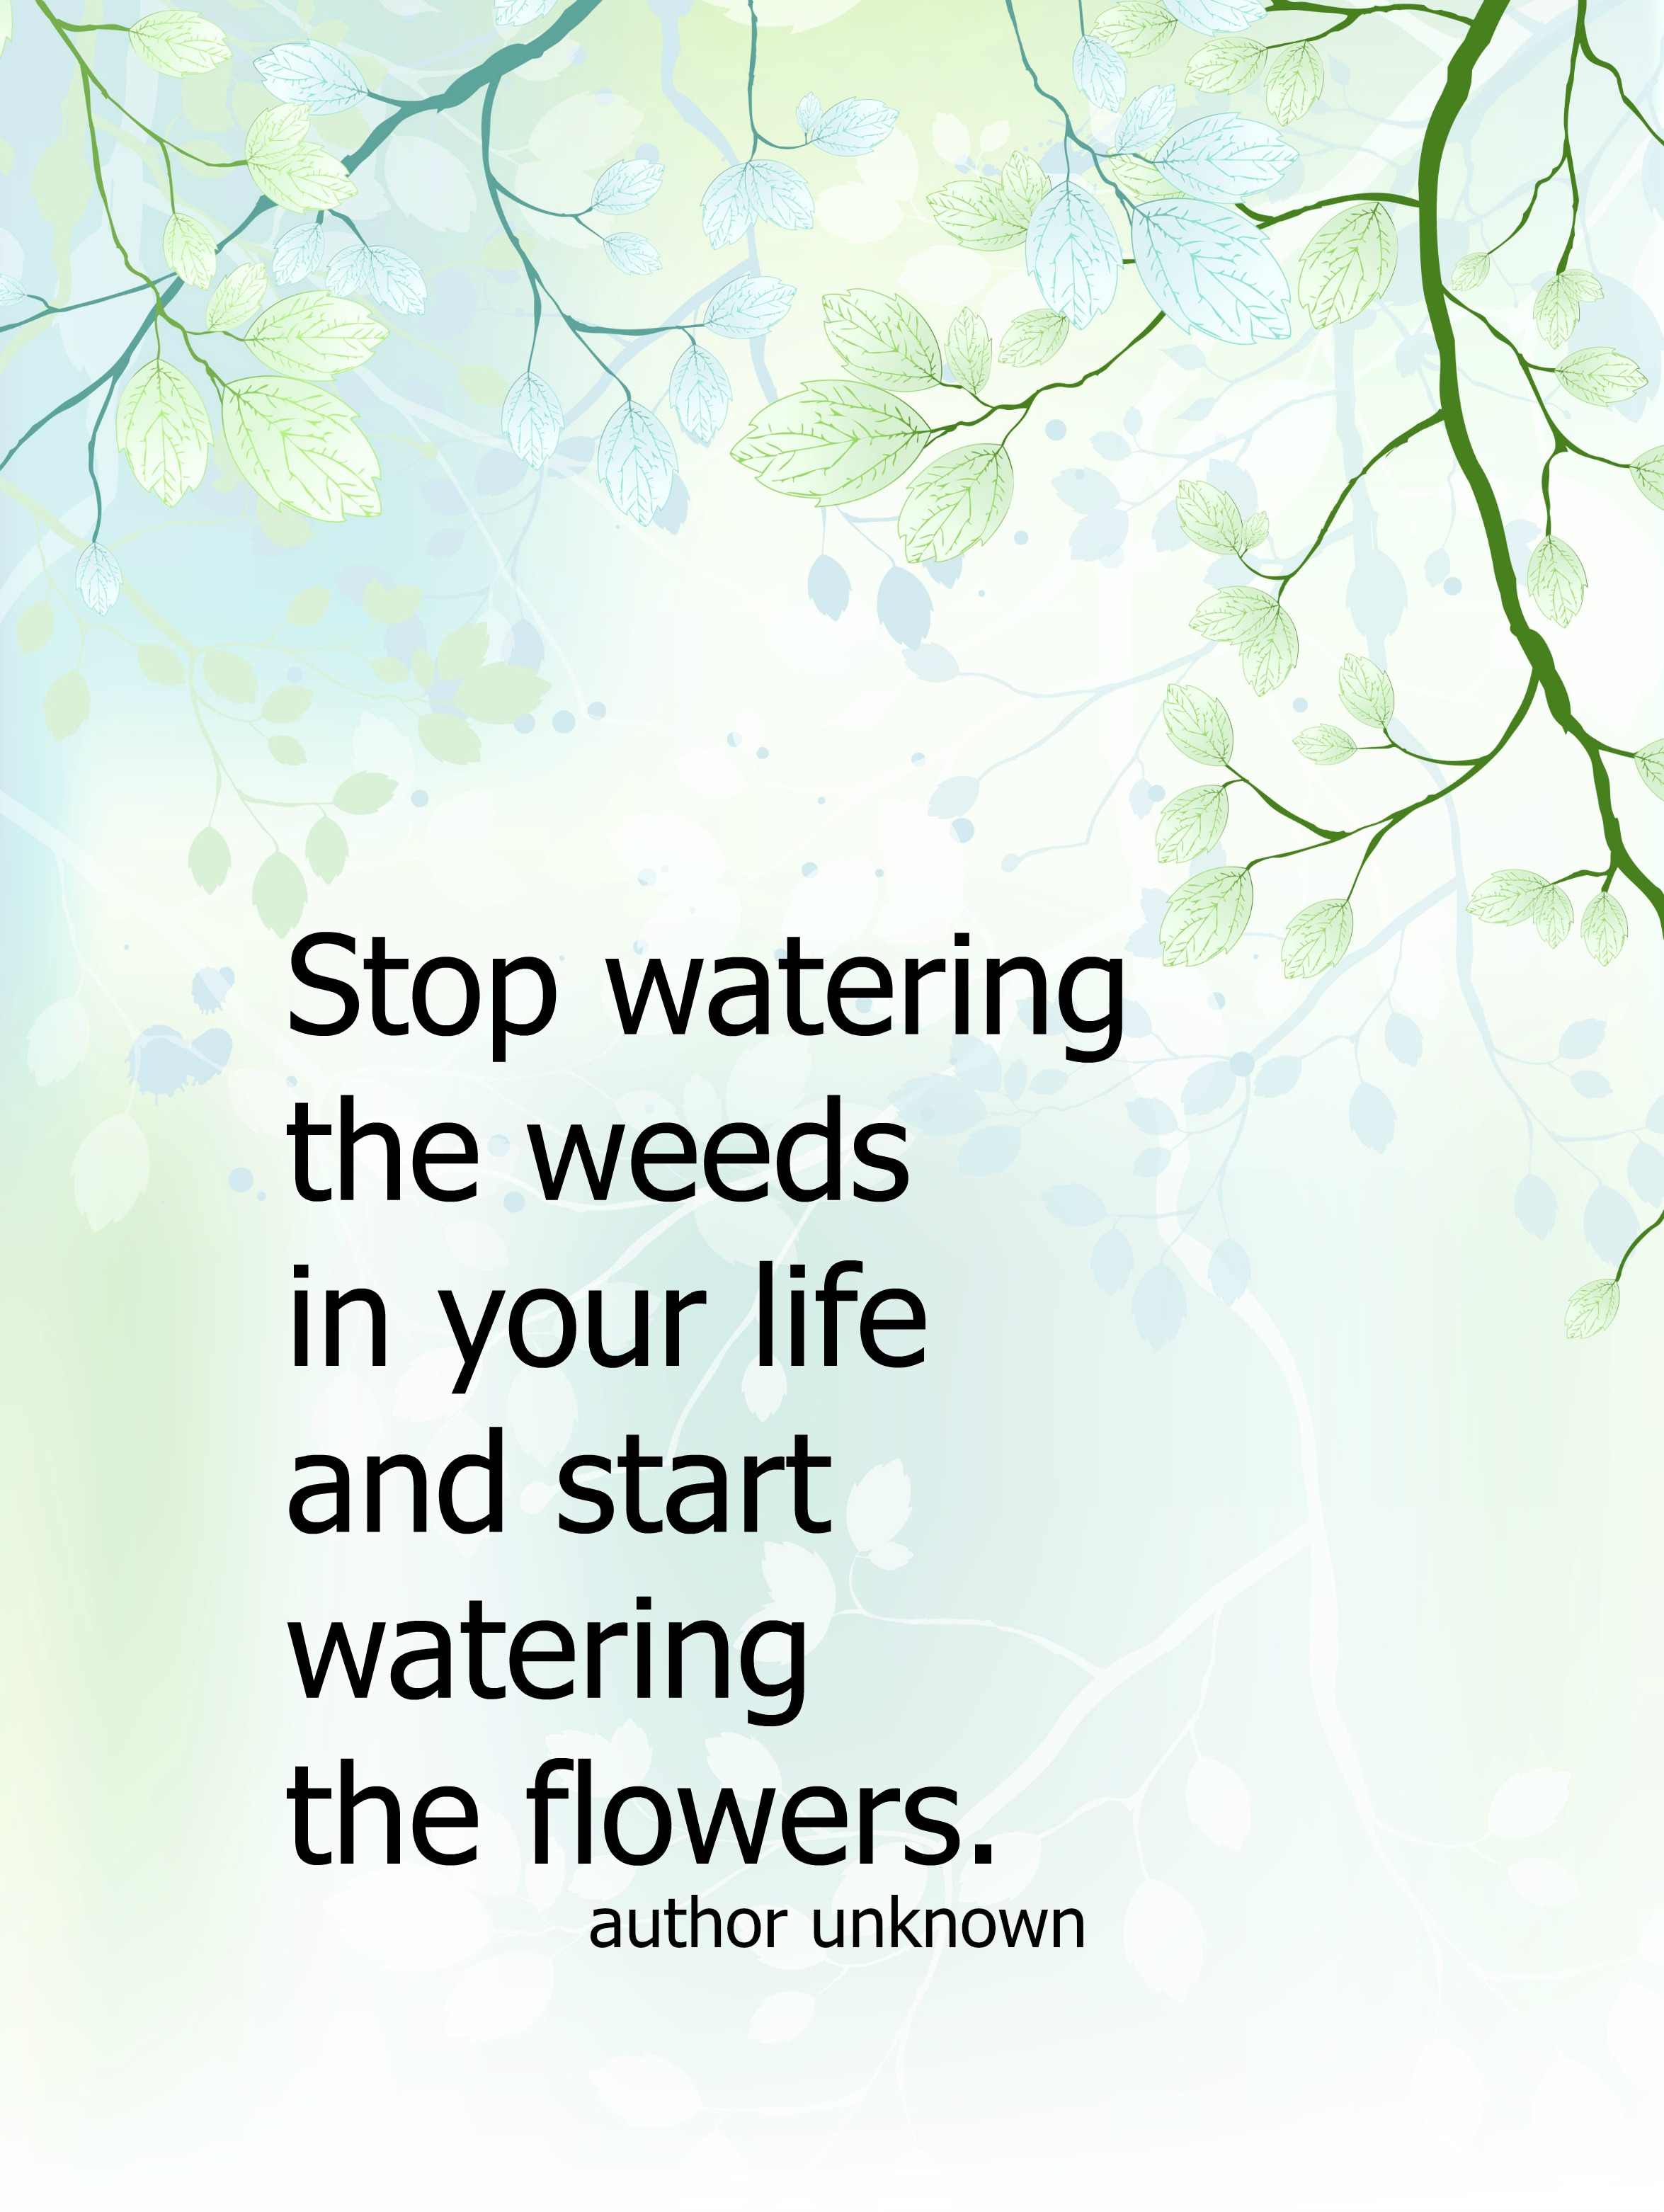 Stop watering the weeds in your live and start watering the flowers